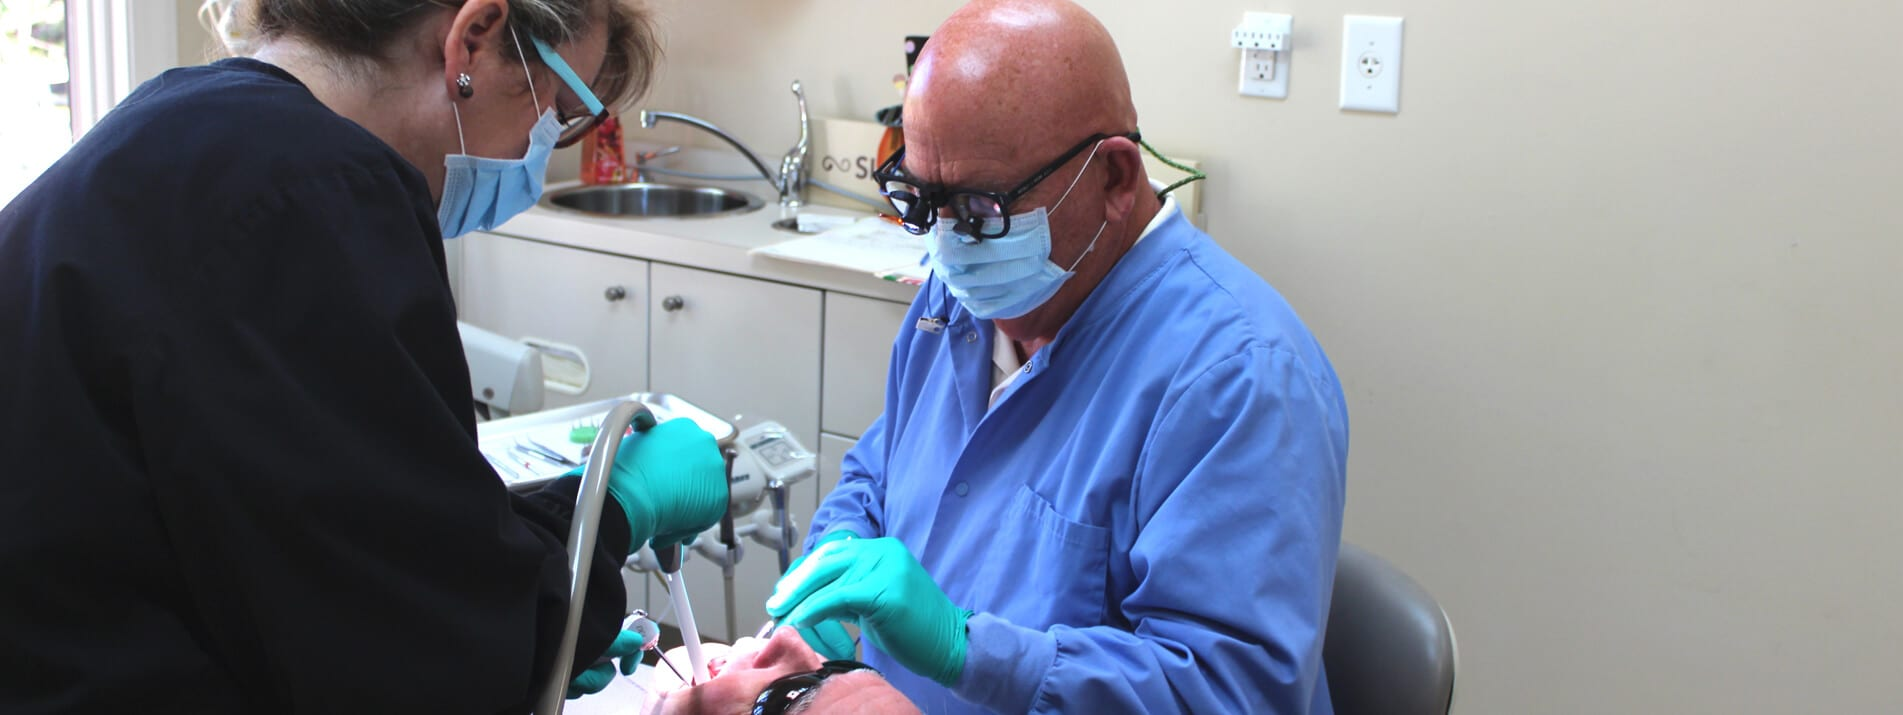 Doctors Working on Teeth